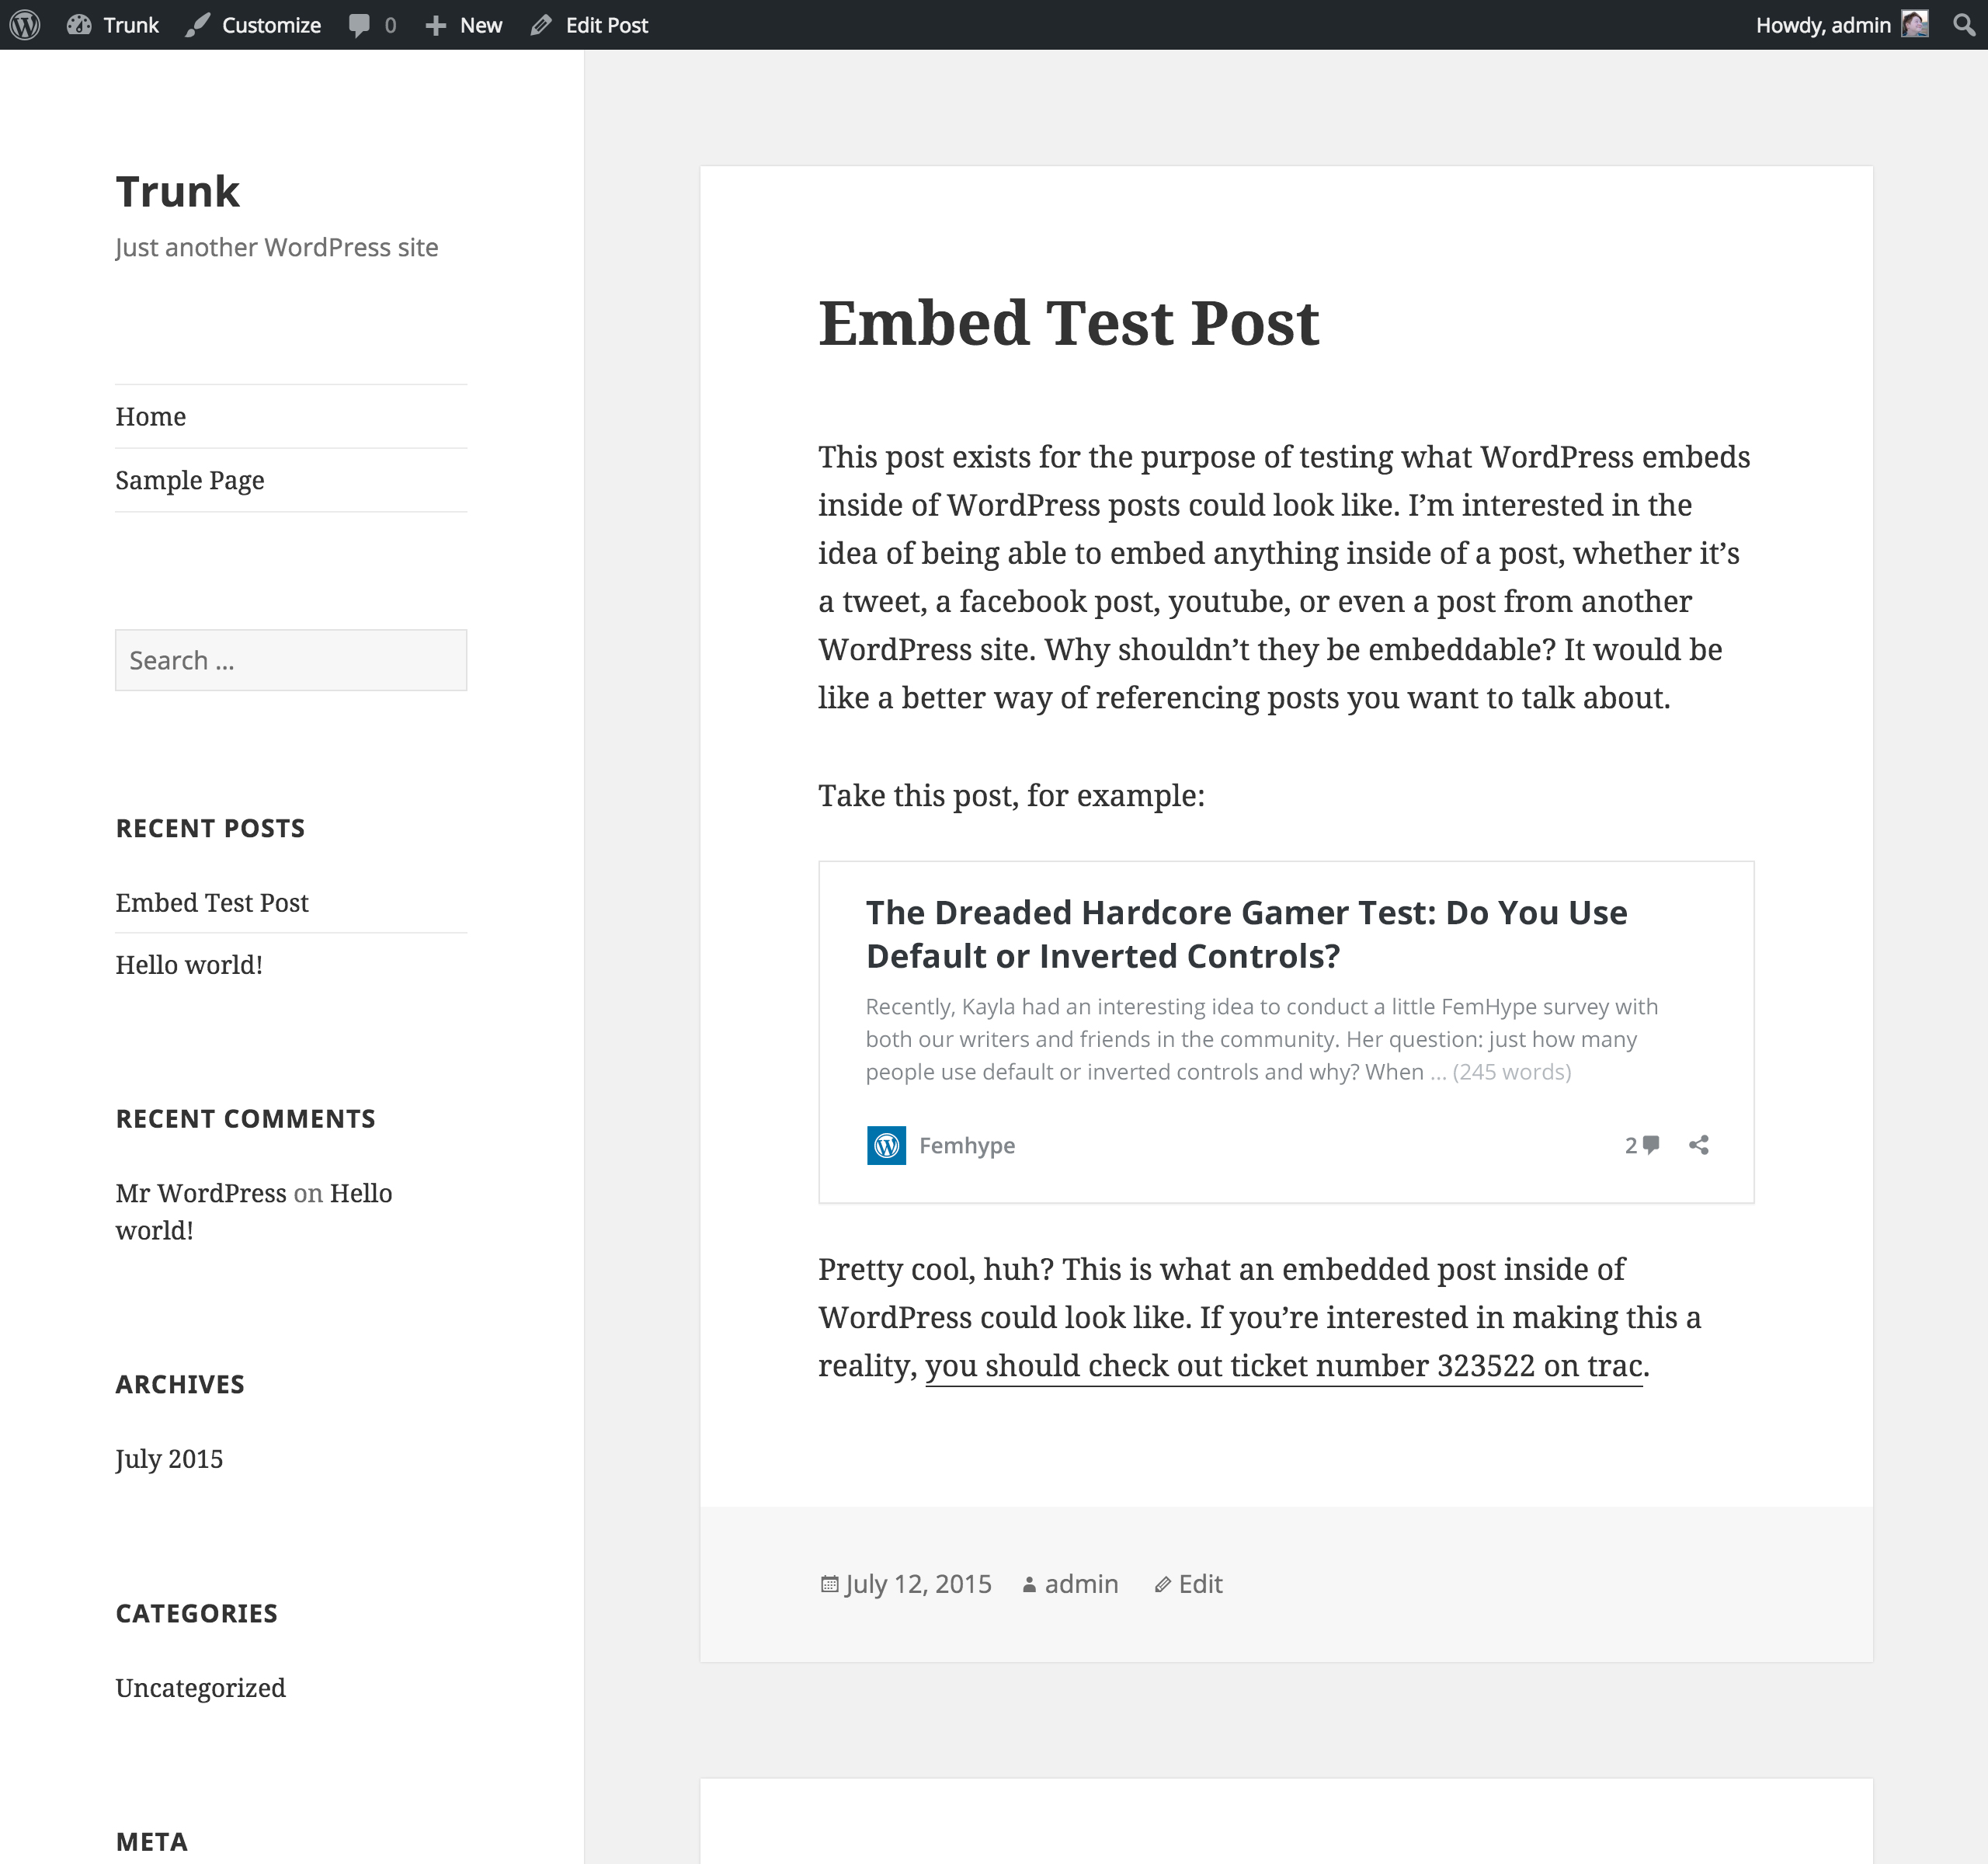 worksheet There Their And They Re Worksheets kicking off the oembed feature plugin make wordpress core embed test 1 noquote